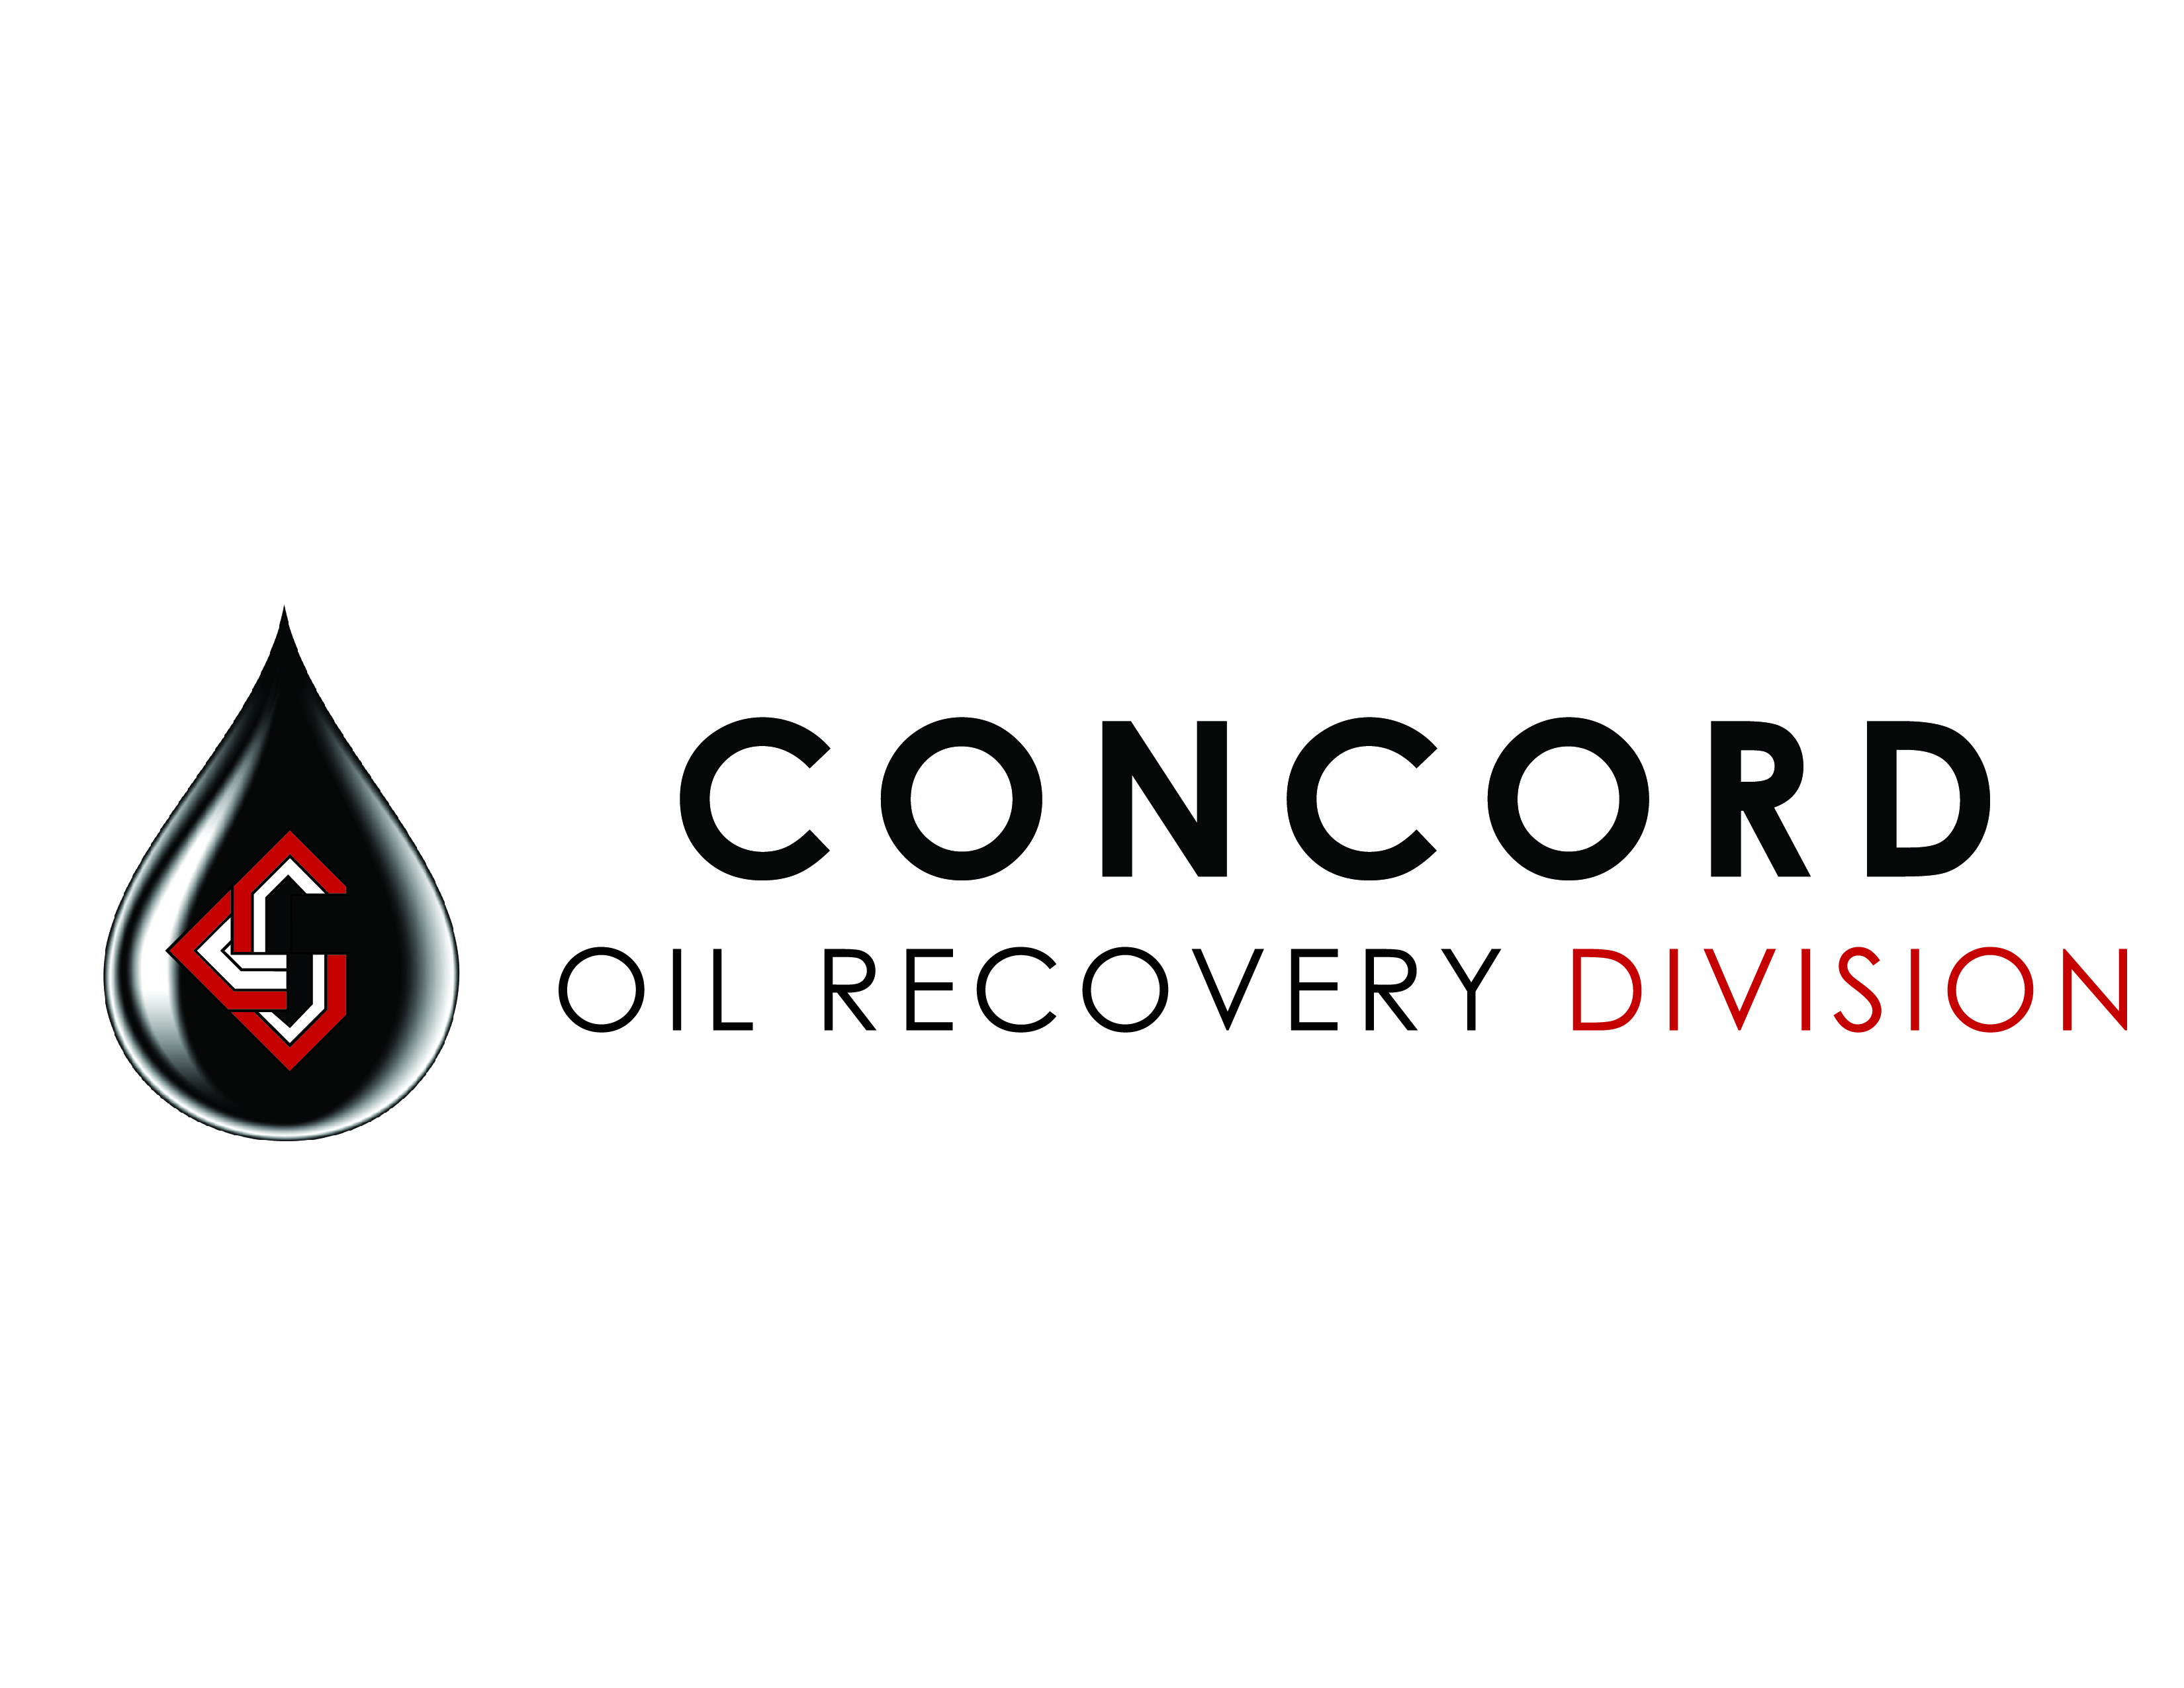 OIL RECOVERY DIVISION